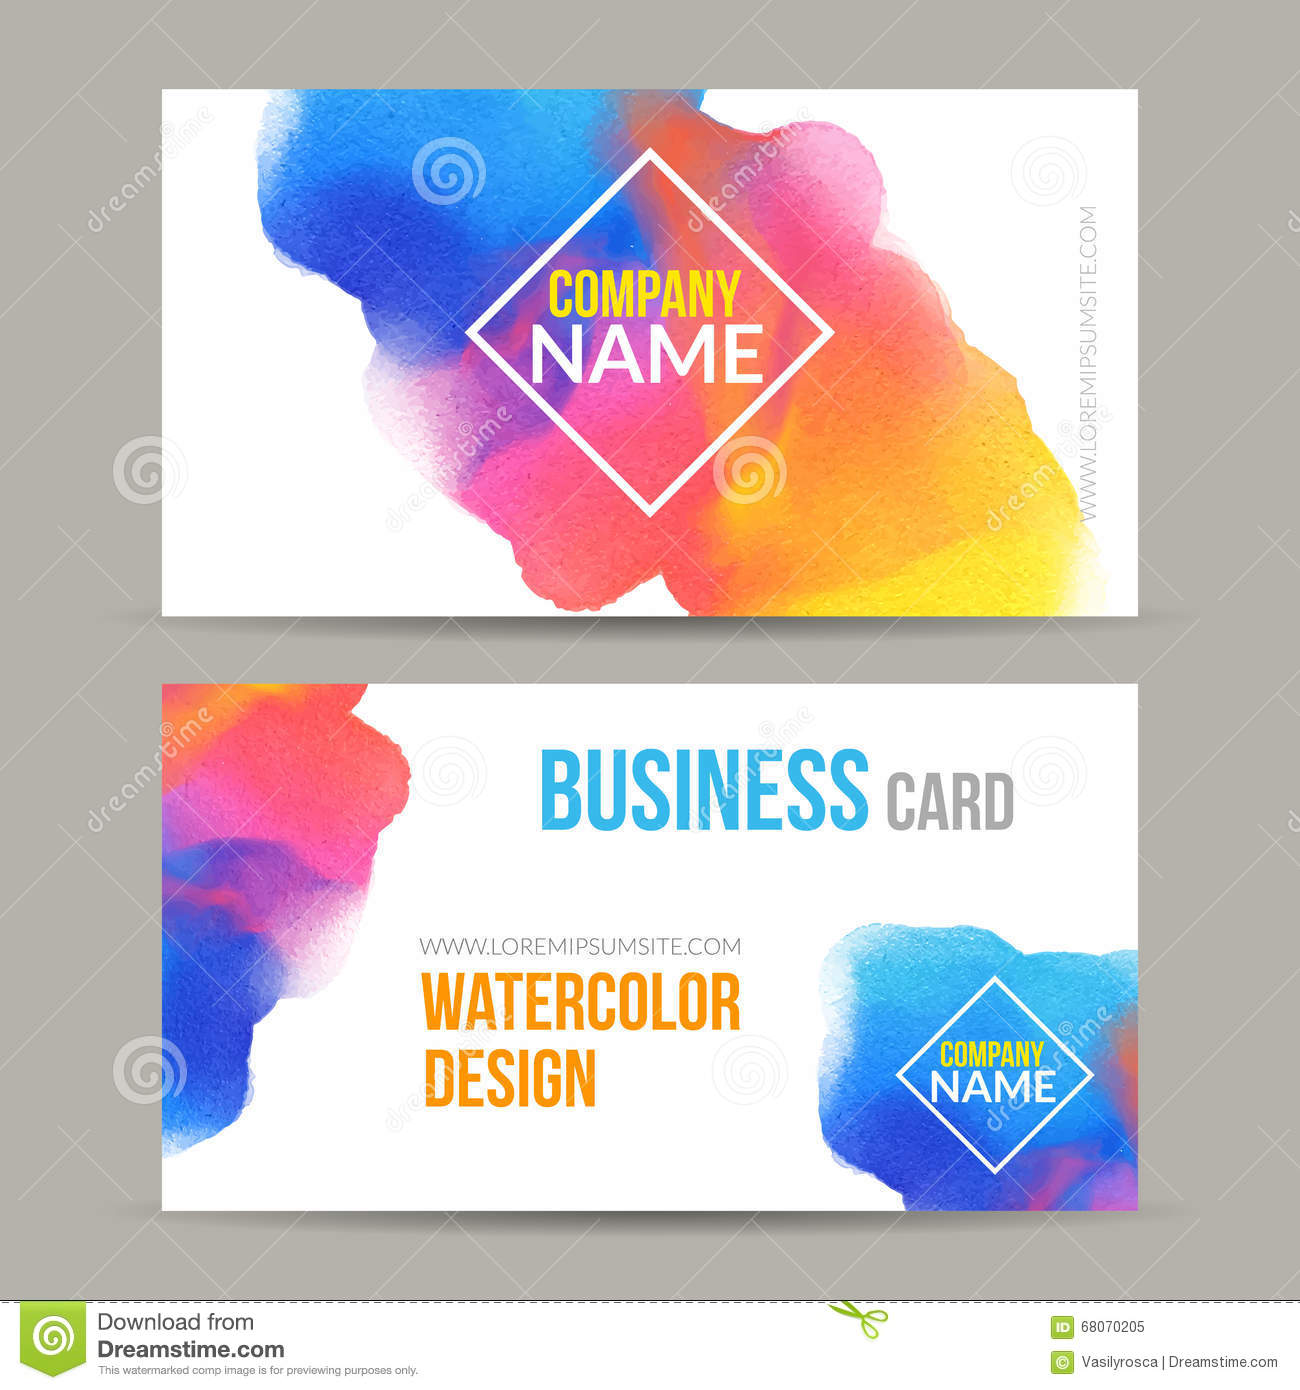 Vector business cards template with watercolor paint abstract vector business cards template with watercolor paint abstract background business card mockup accmission Images